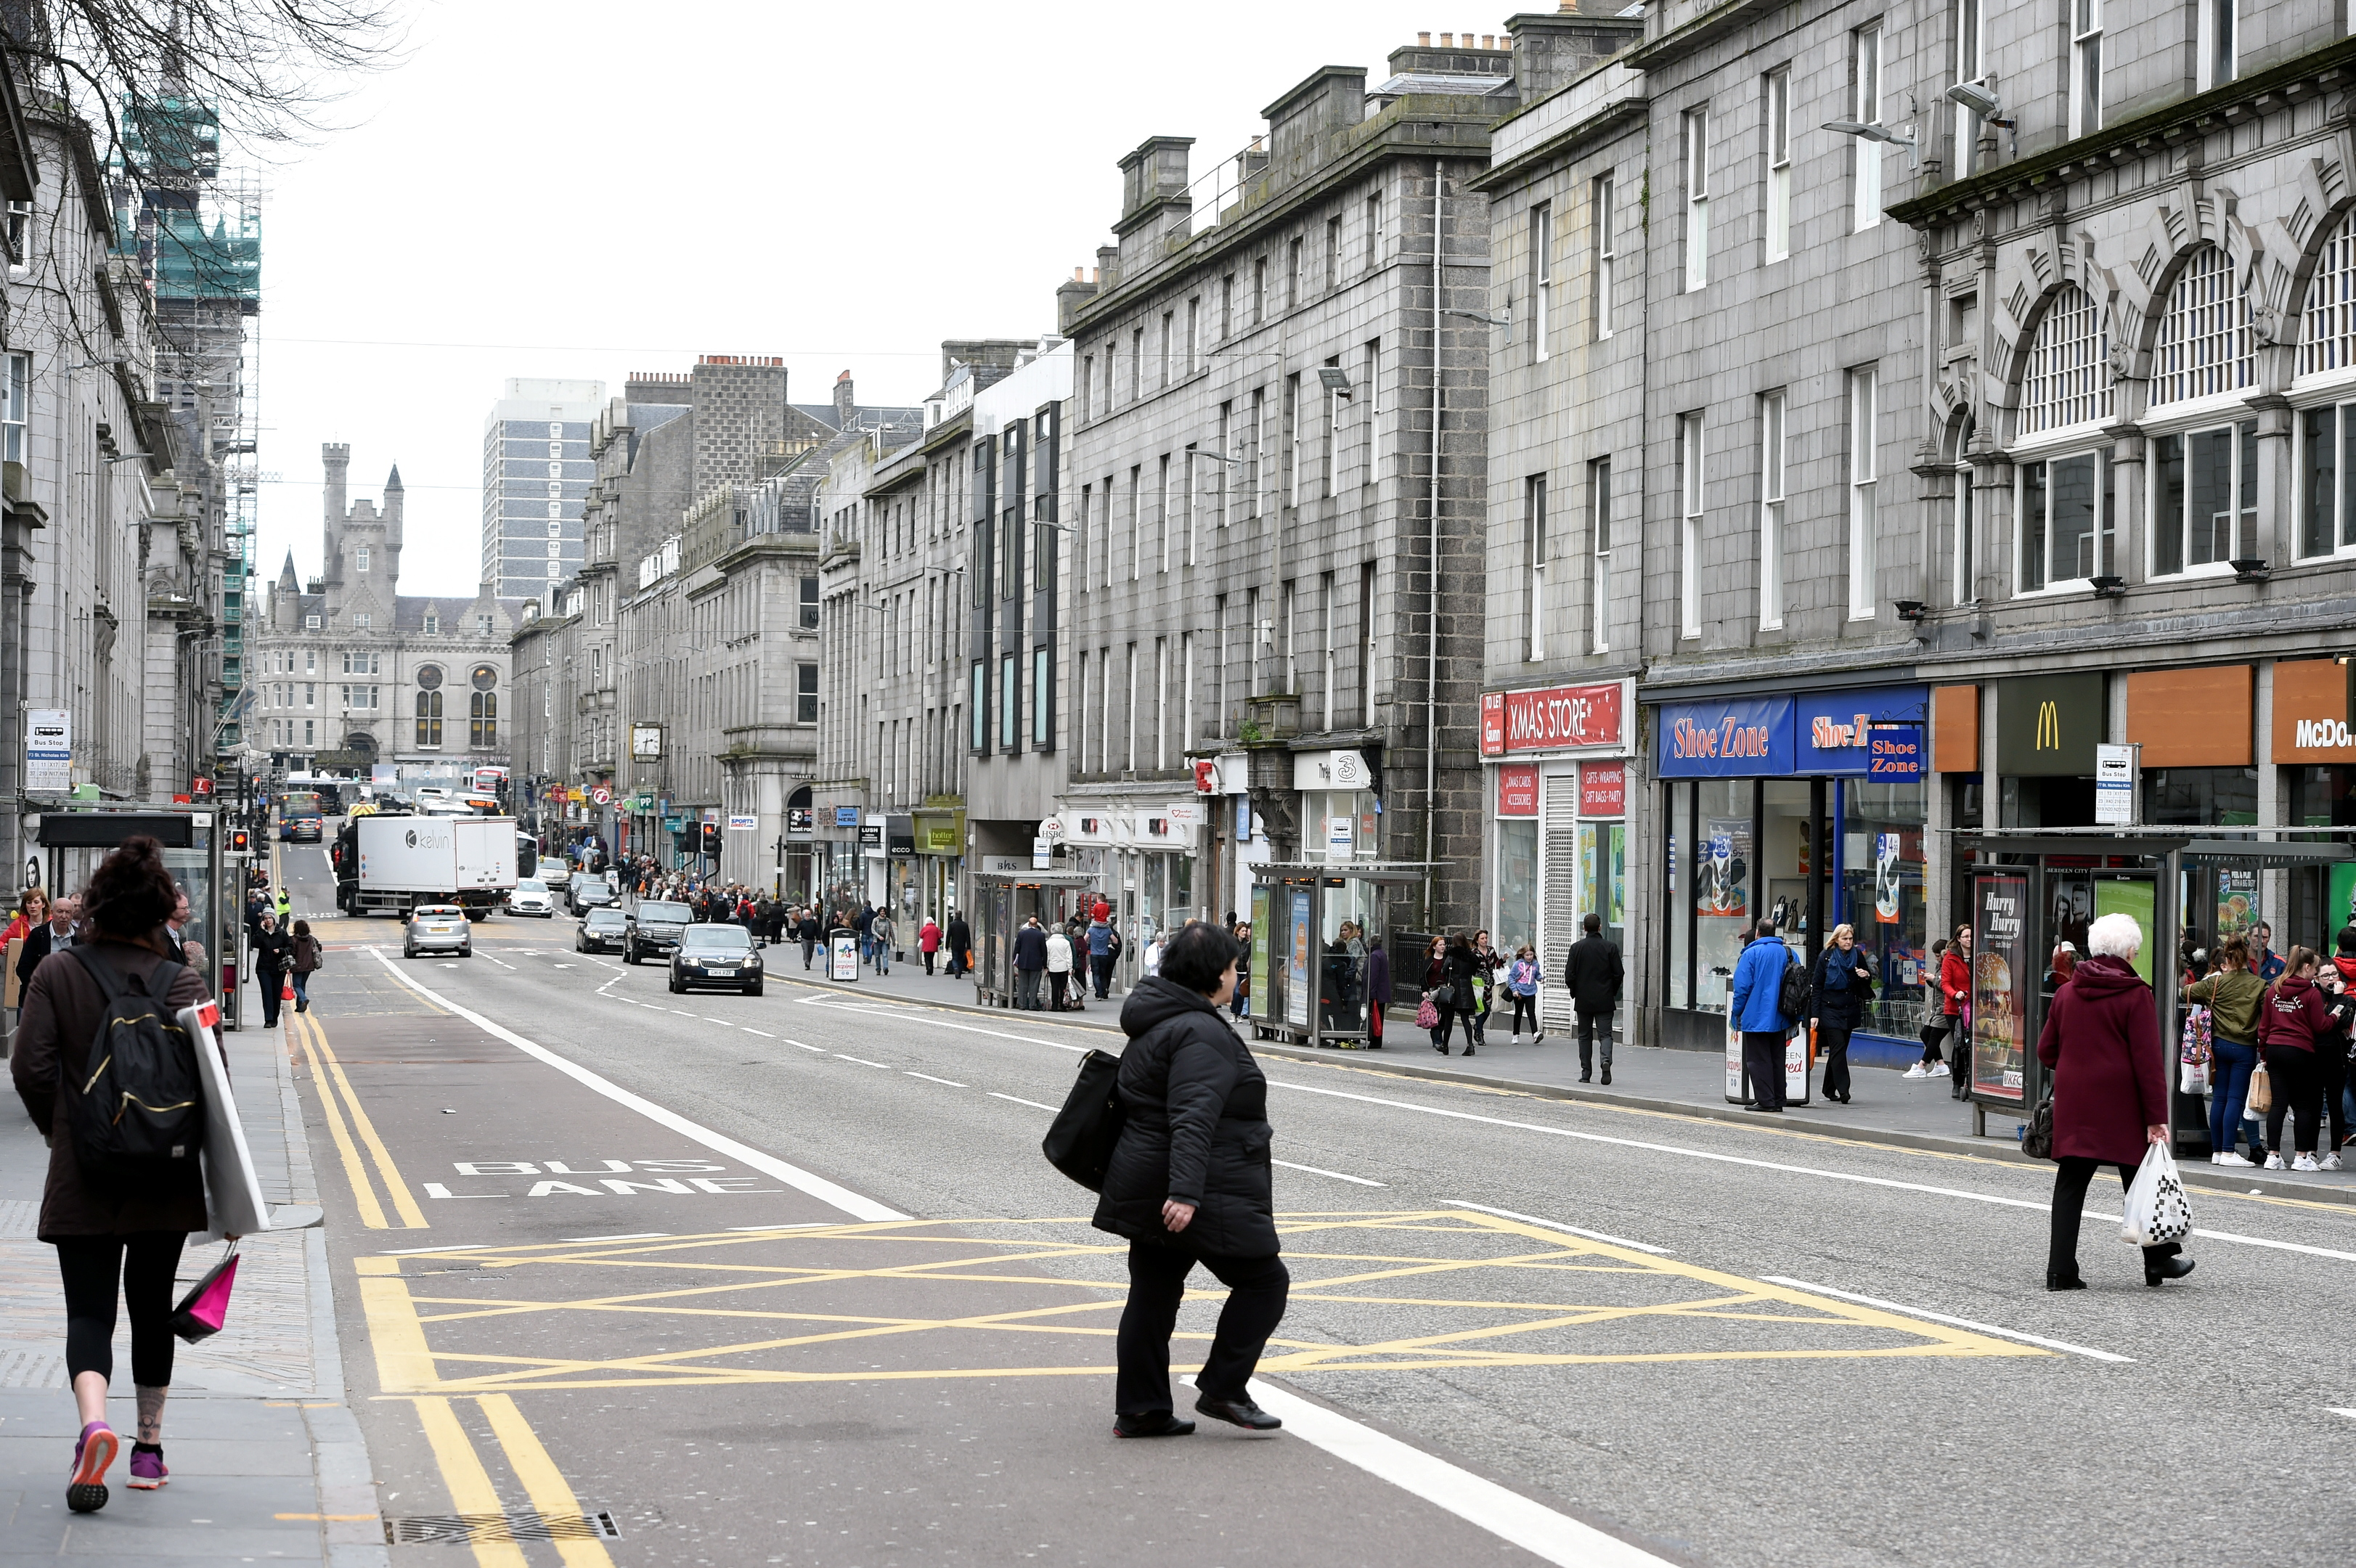 Several shops in Aberdeen will not be reopening after lockdown